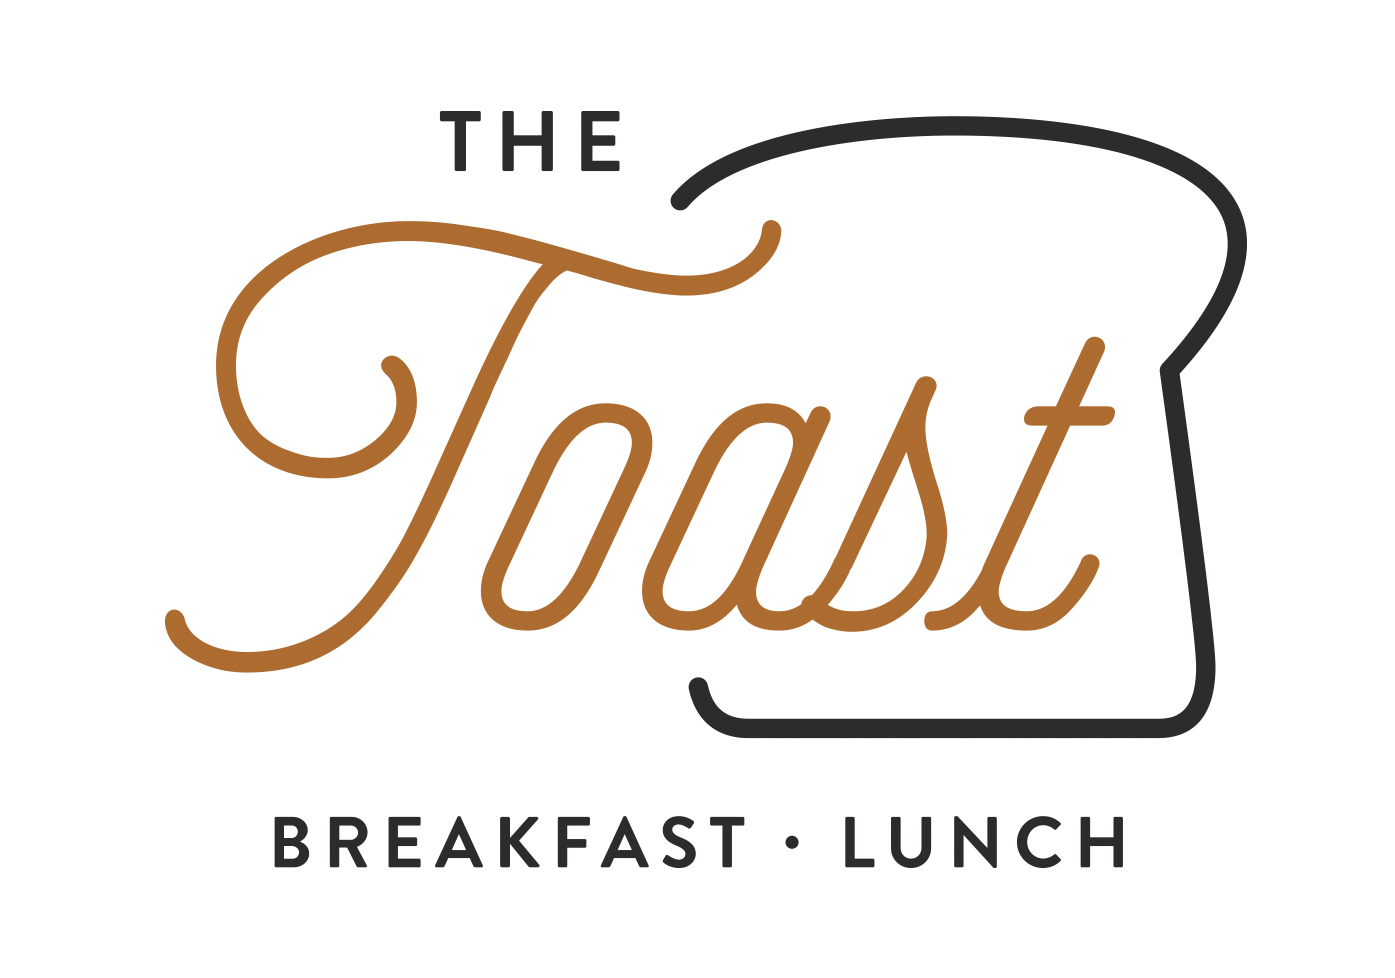 The Toast - Brady Design Studio